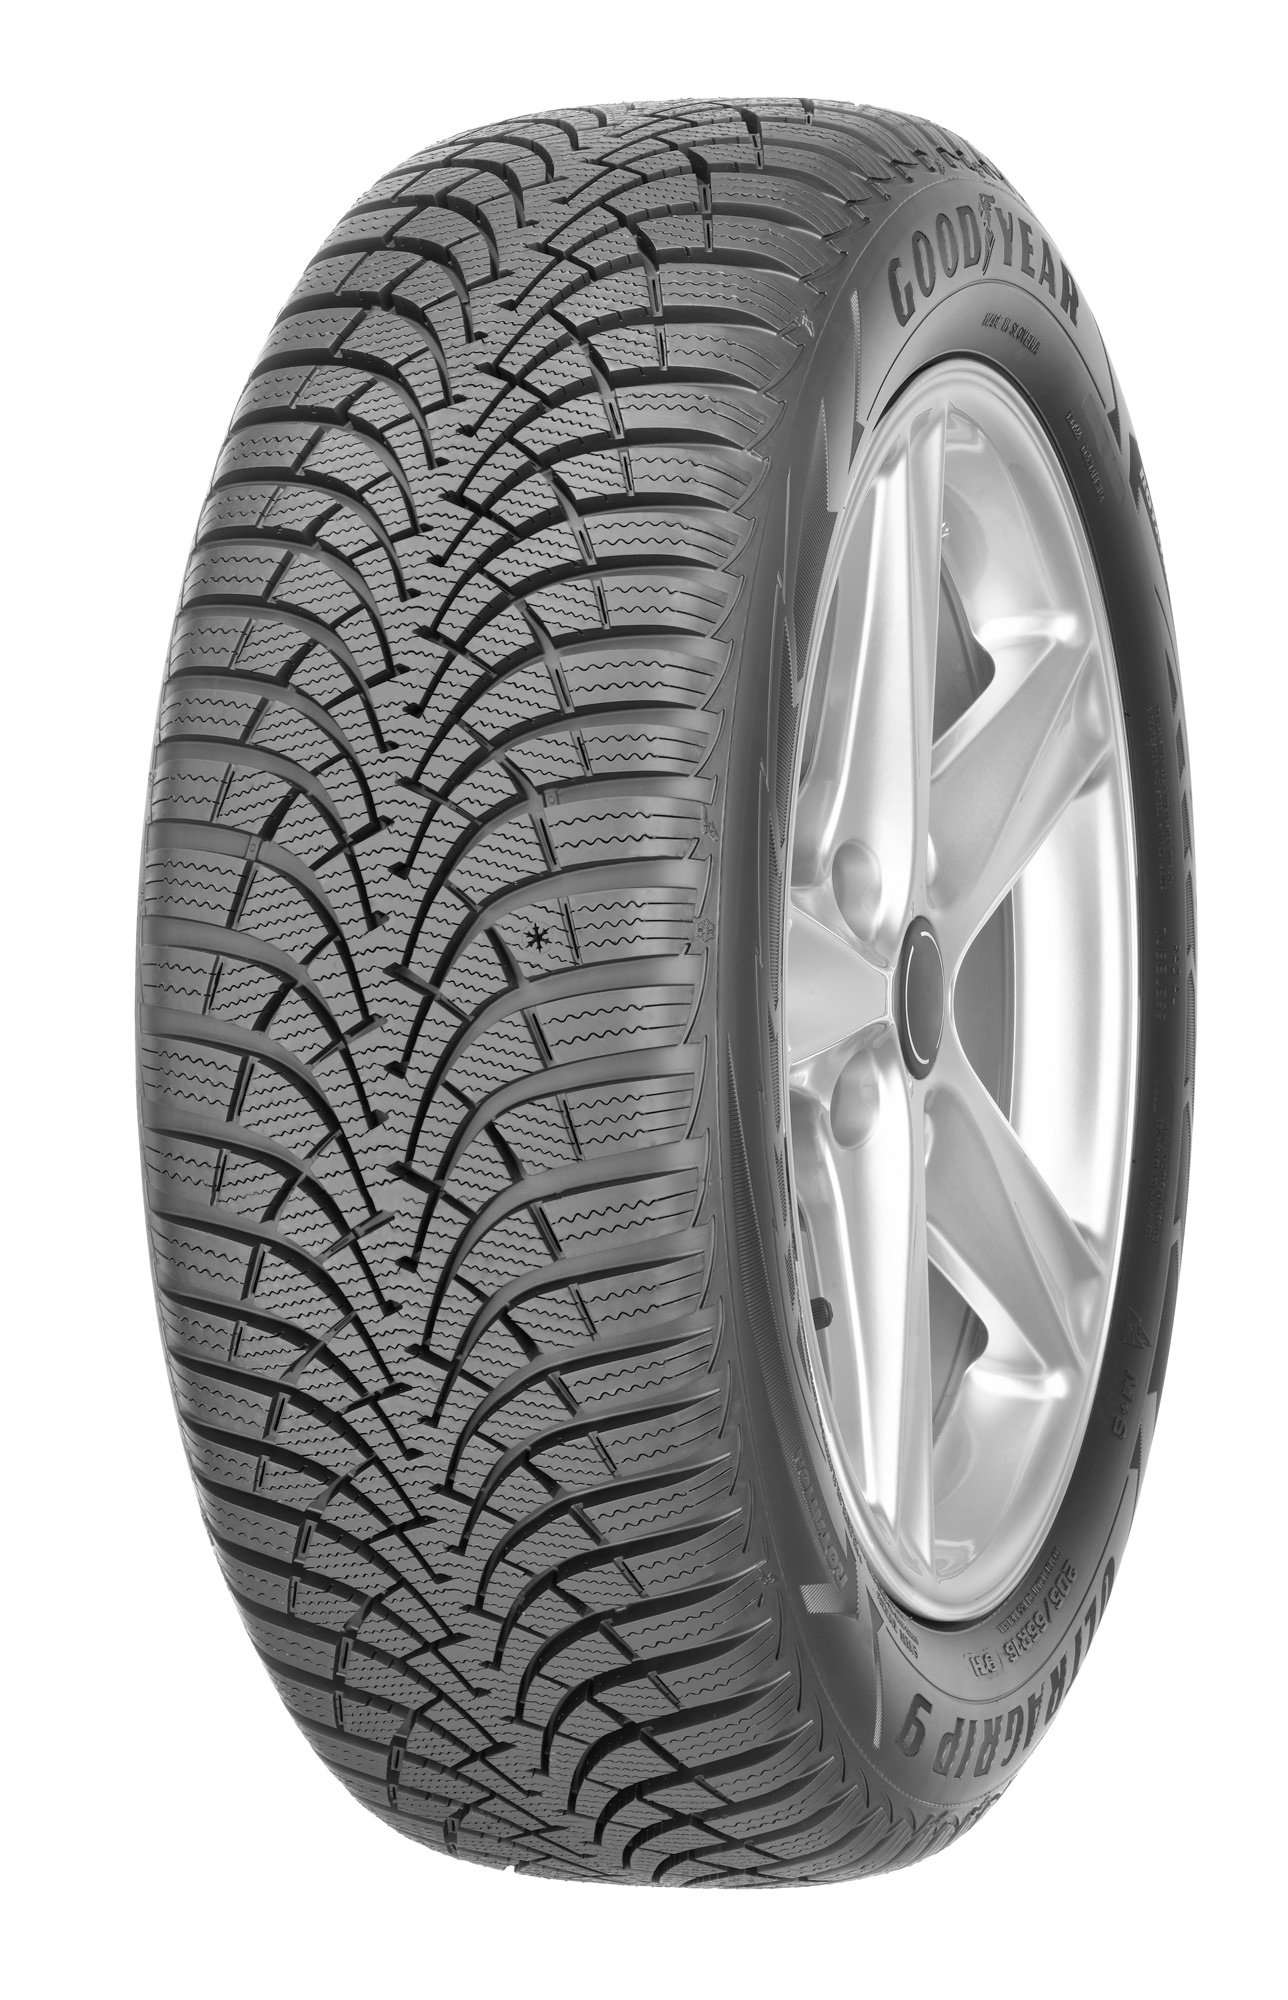 Pneu GOODYEAR ULTRAGRIP 9 MS 195/65R15 91